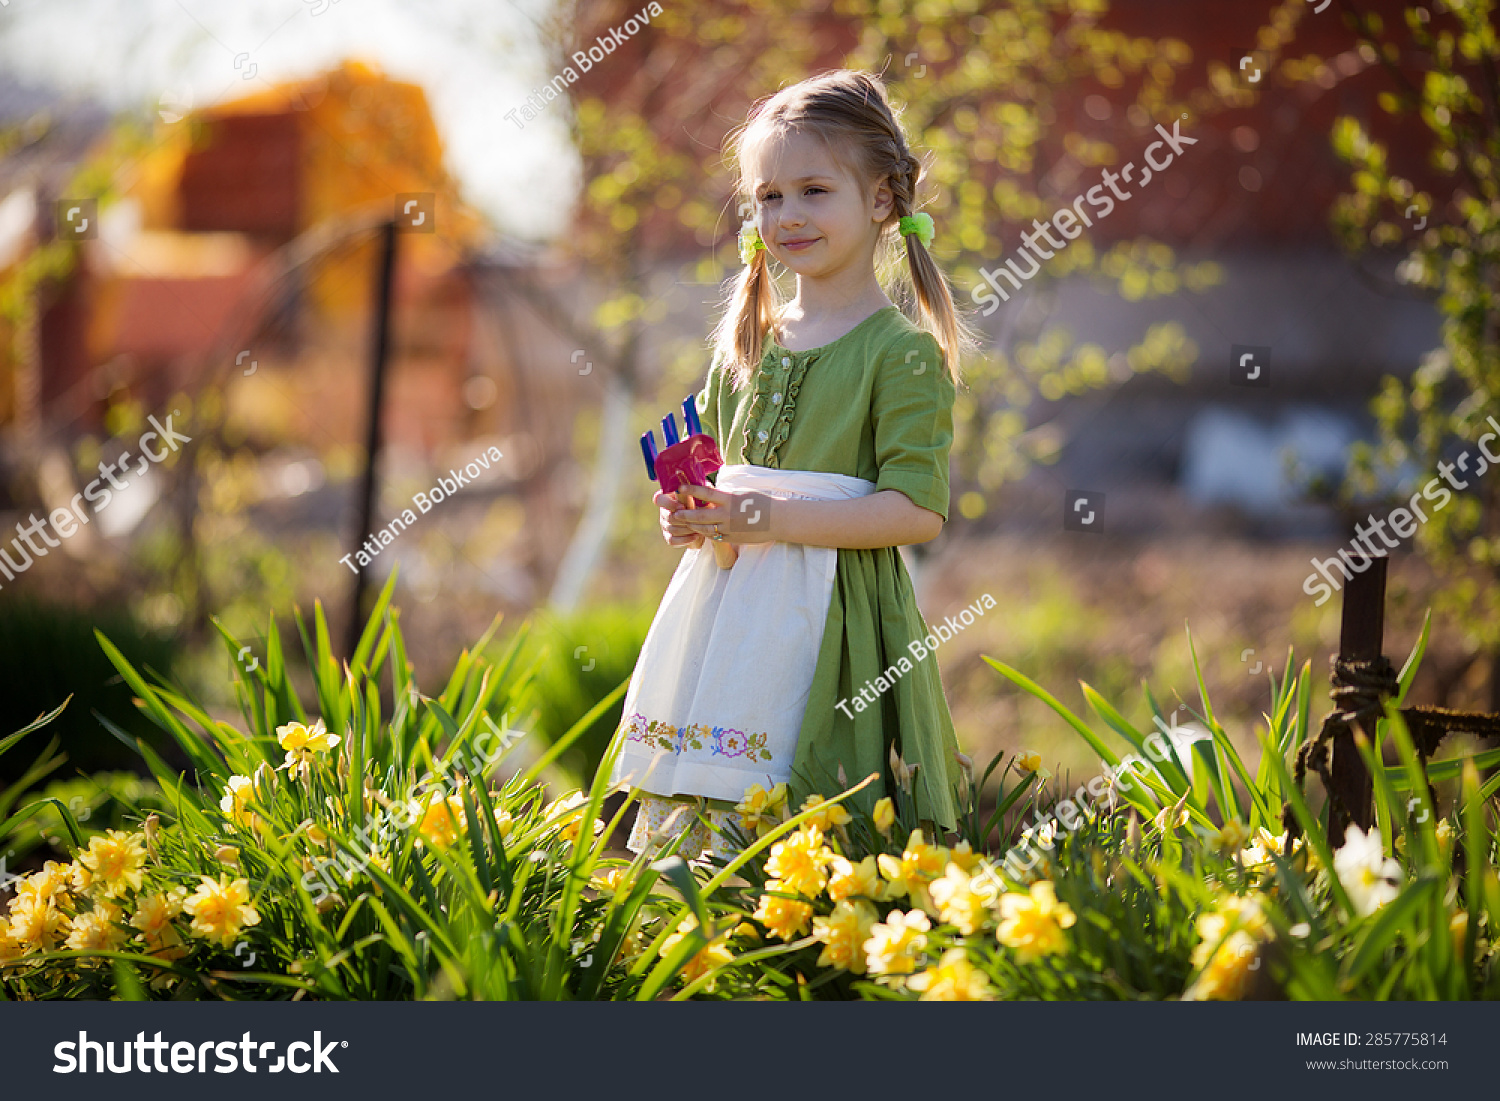 White apron girl - A Cute Little Girl In A Green Dress And White Apron Working In The Garden Among